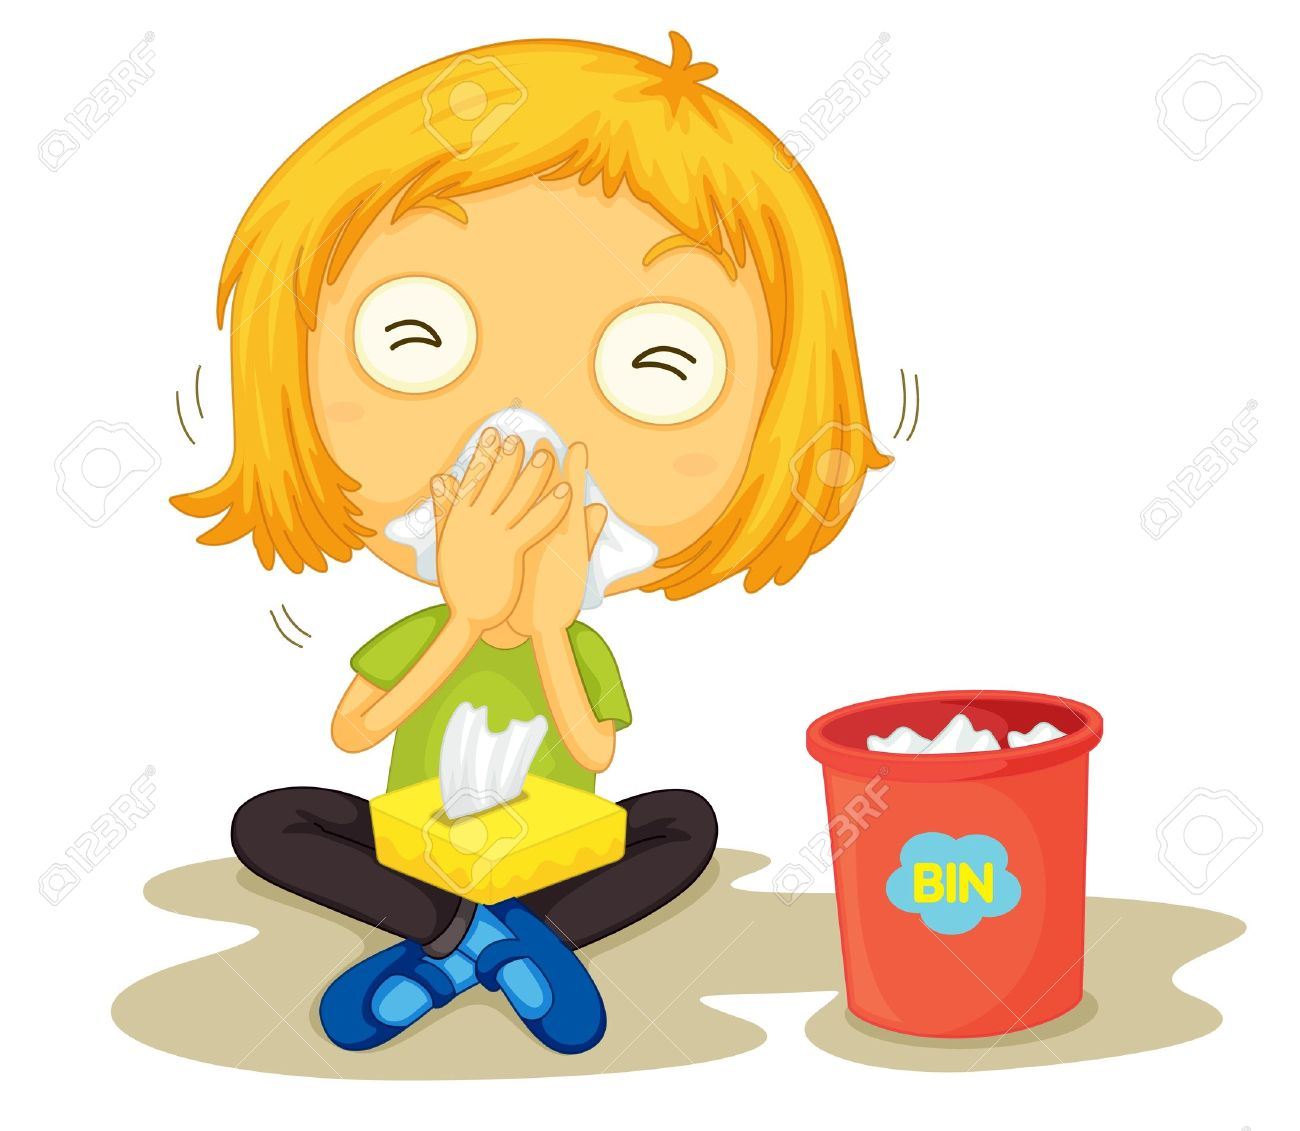 sick child illustration of a sick girl - Cartoon Picture Of Child